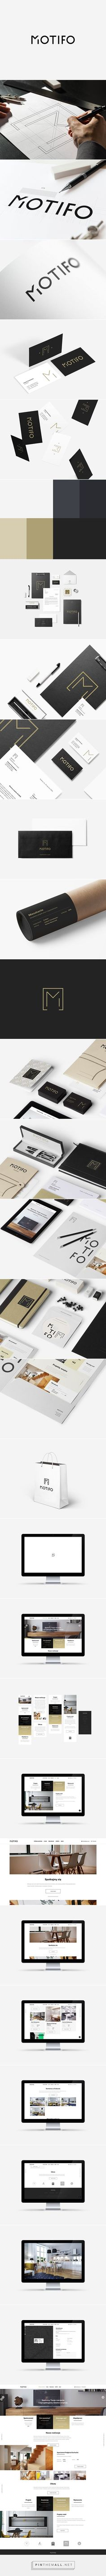 MOTIFO - Interior Design Architect Branding & Website on Behance. - a grouped images picture - Pin Them All Corporate Design, Brand Identity Design, Graphic Design Typography, Corporate Identity, Brand Design, Web Design, Creative Design, Logo Inspiration, Design Graphique